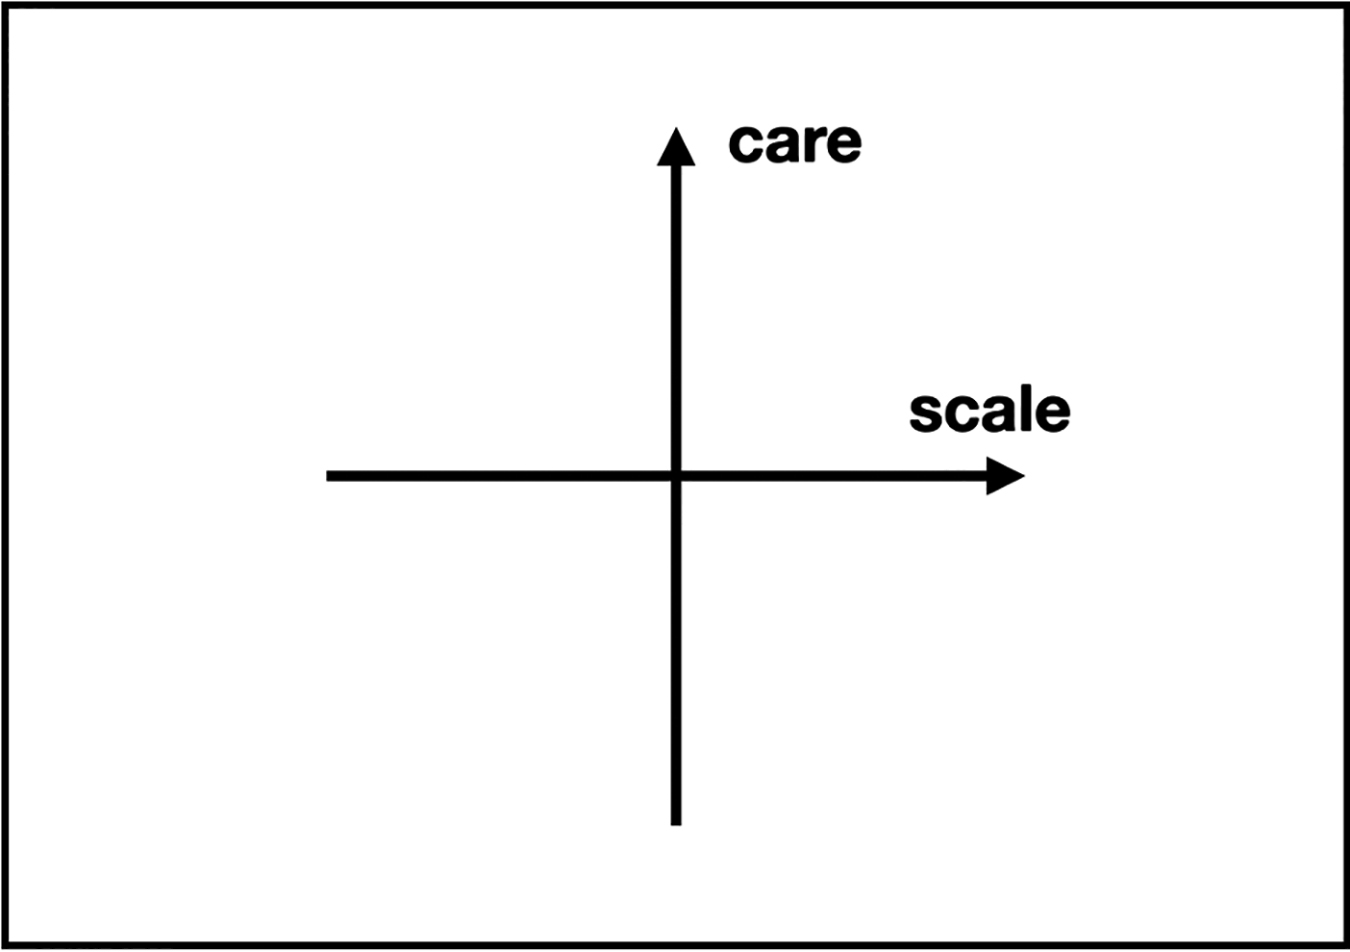 Care and scale, as two dimensions. Figure redrawn by author from Whitman (2012).